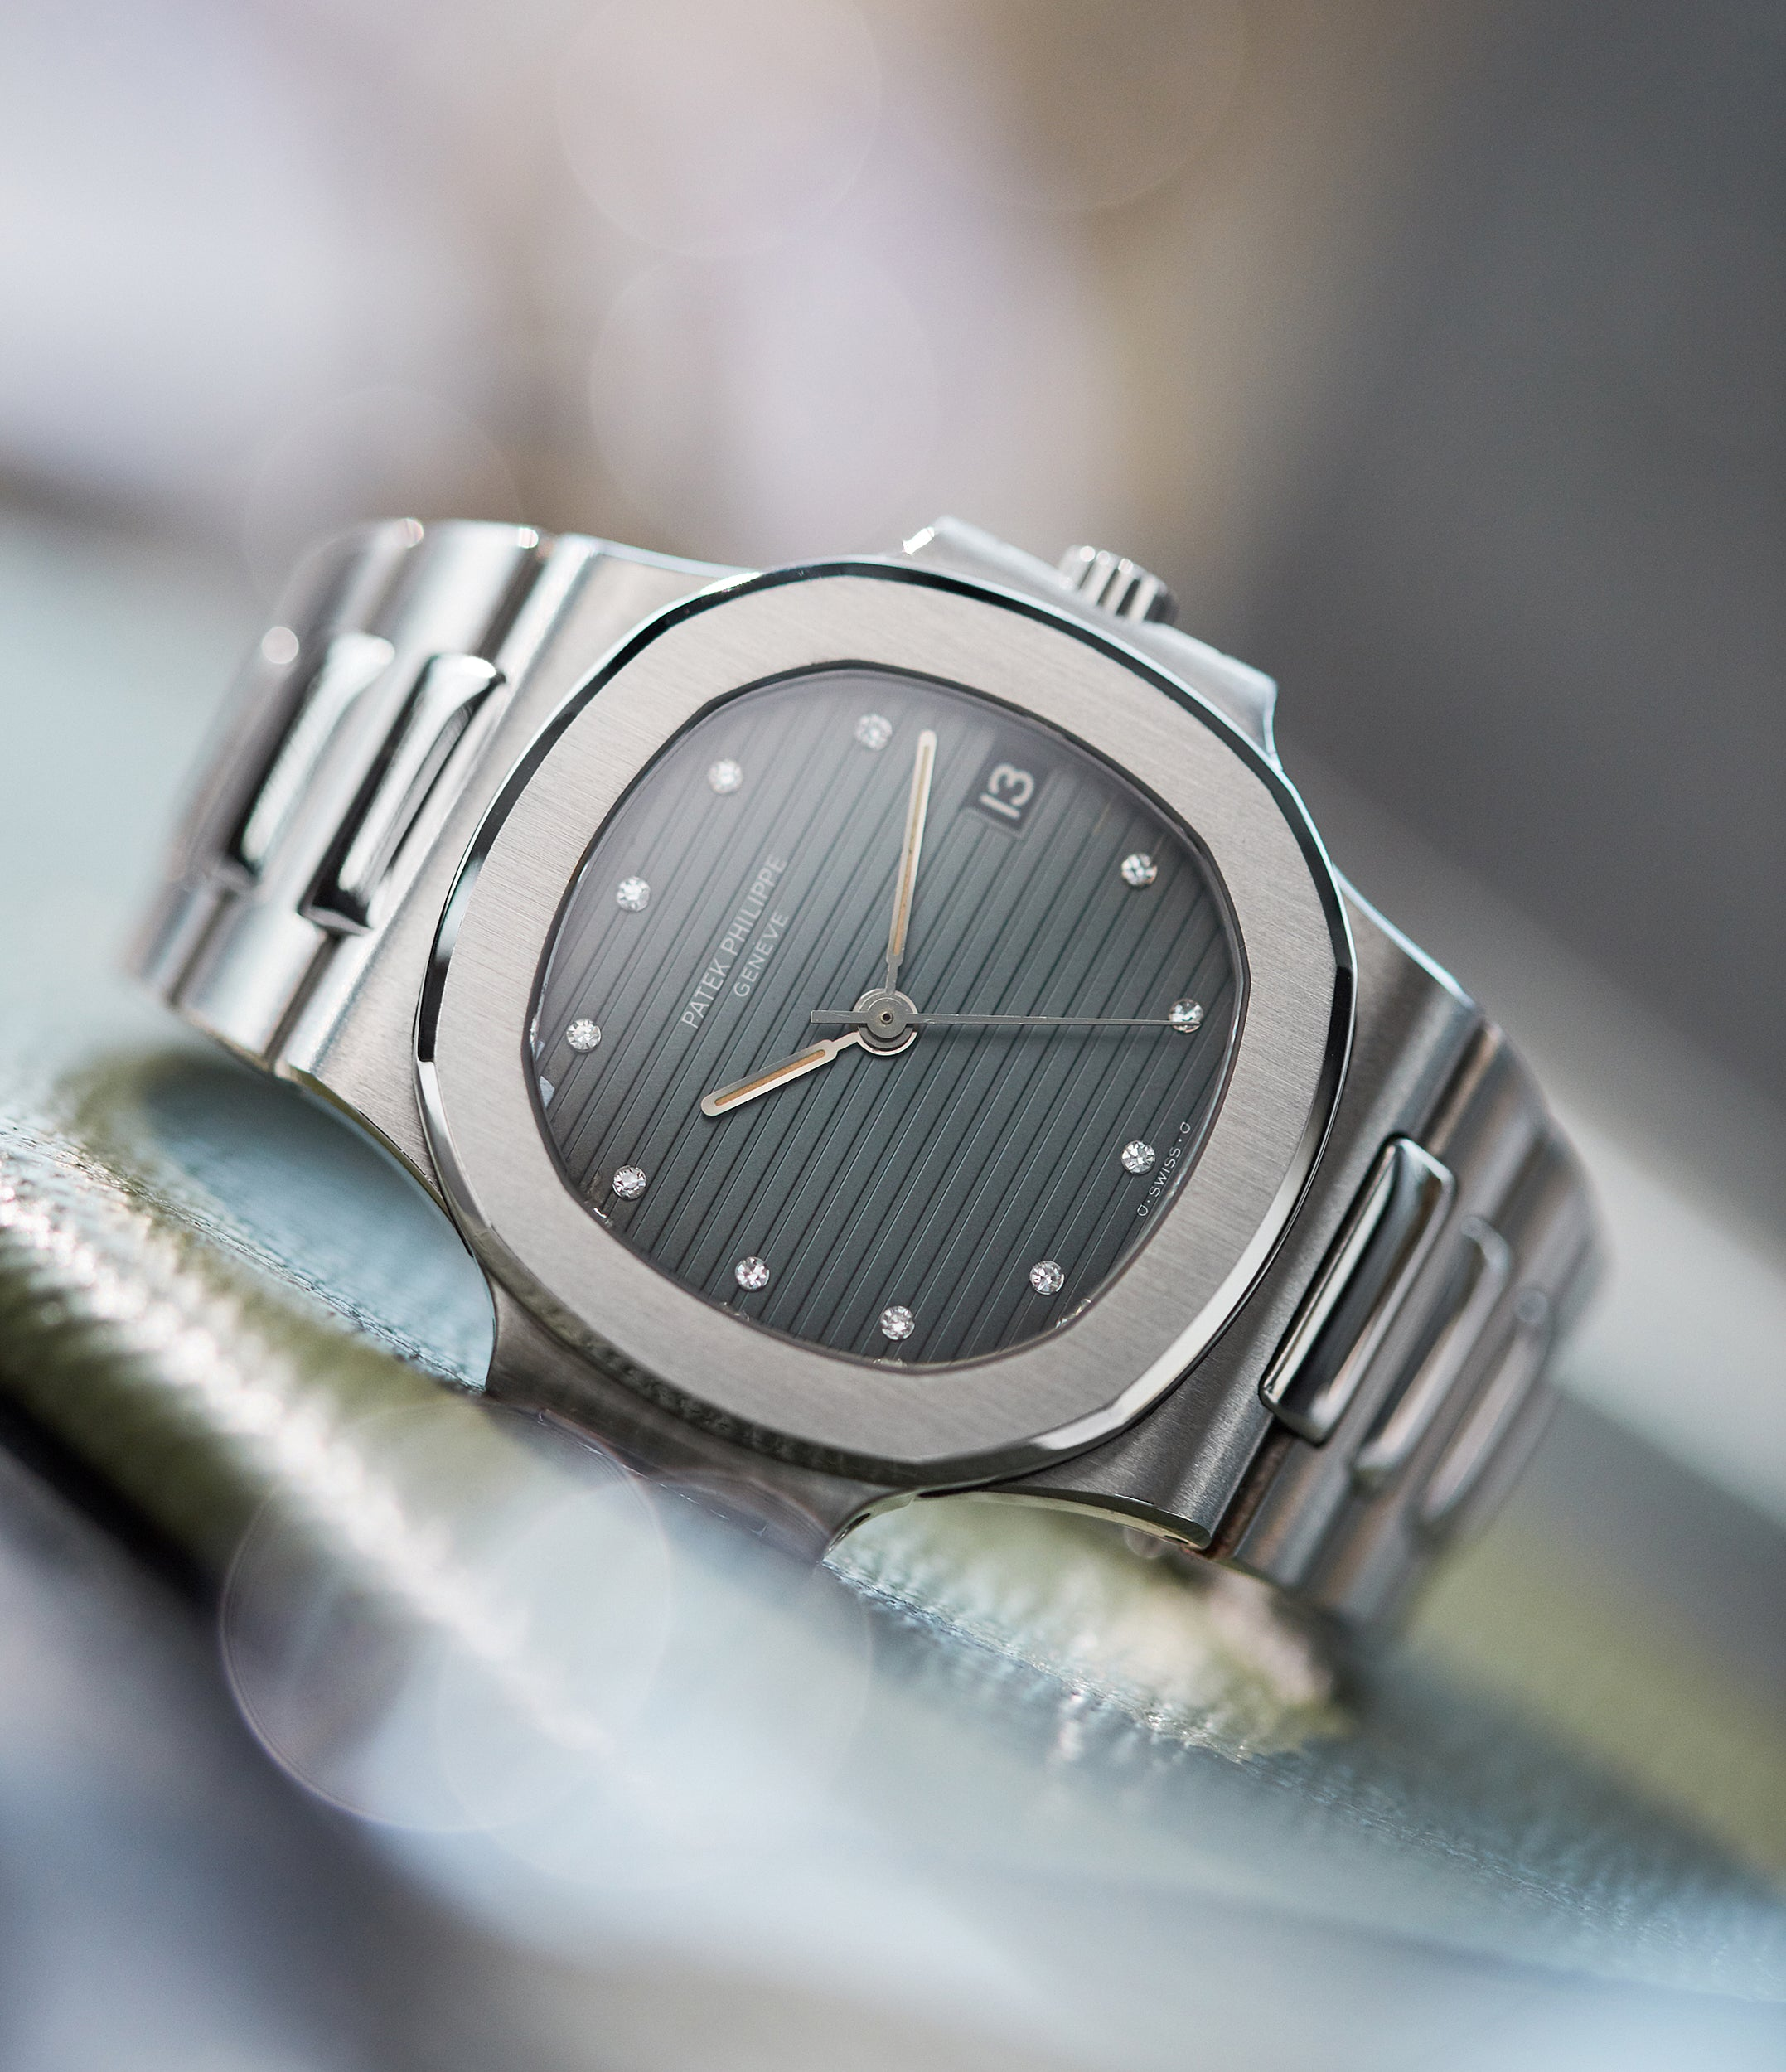 Patek Philippe Nautilus 3800 in stainless steel blue dial with diamond markers from A Collected Man London